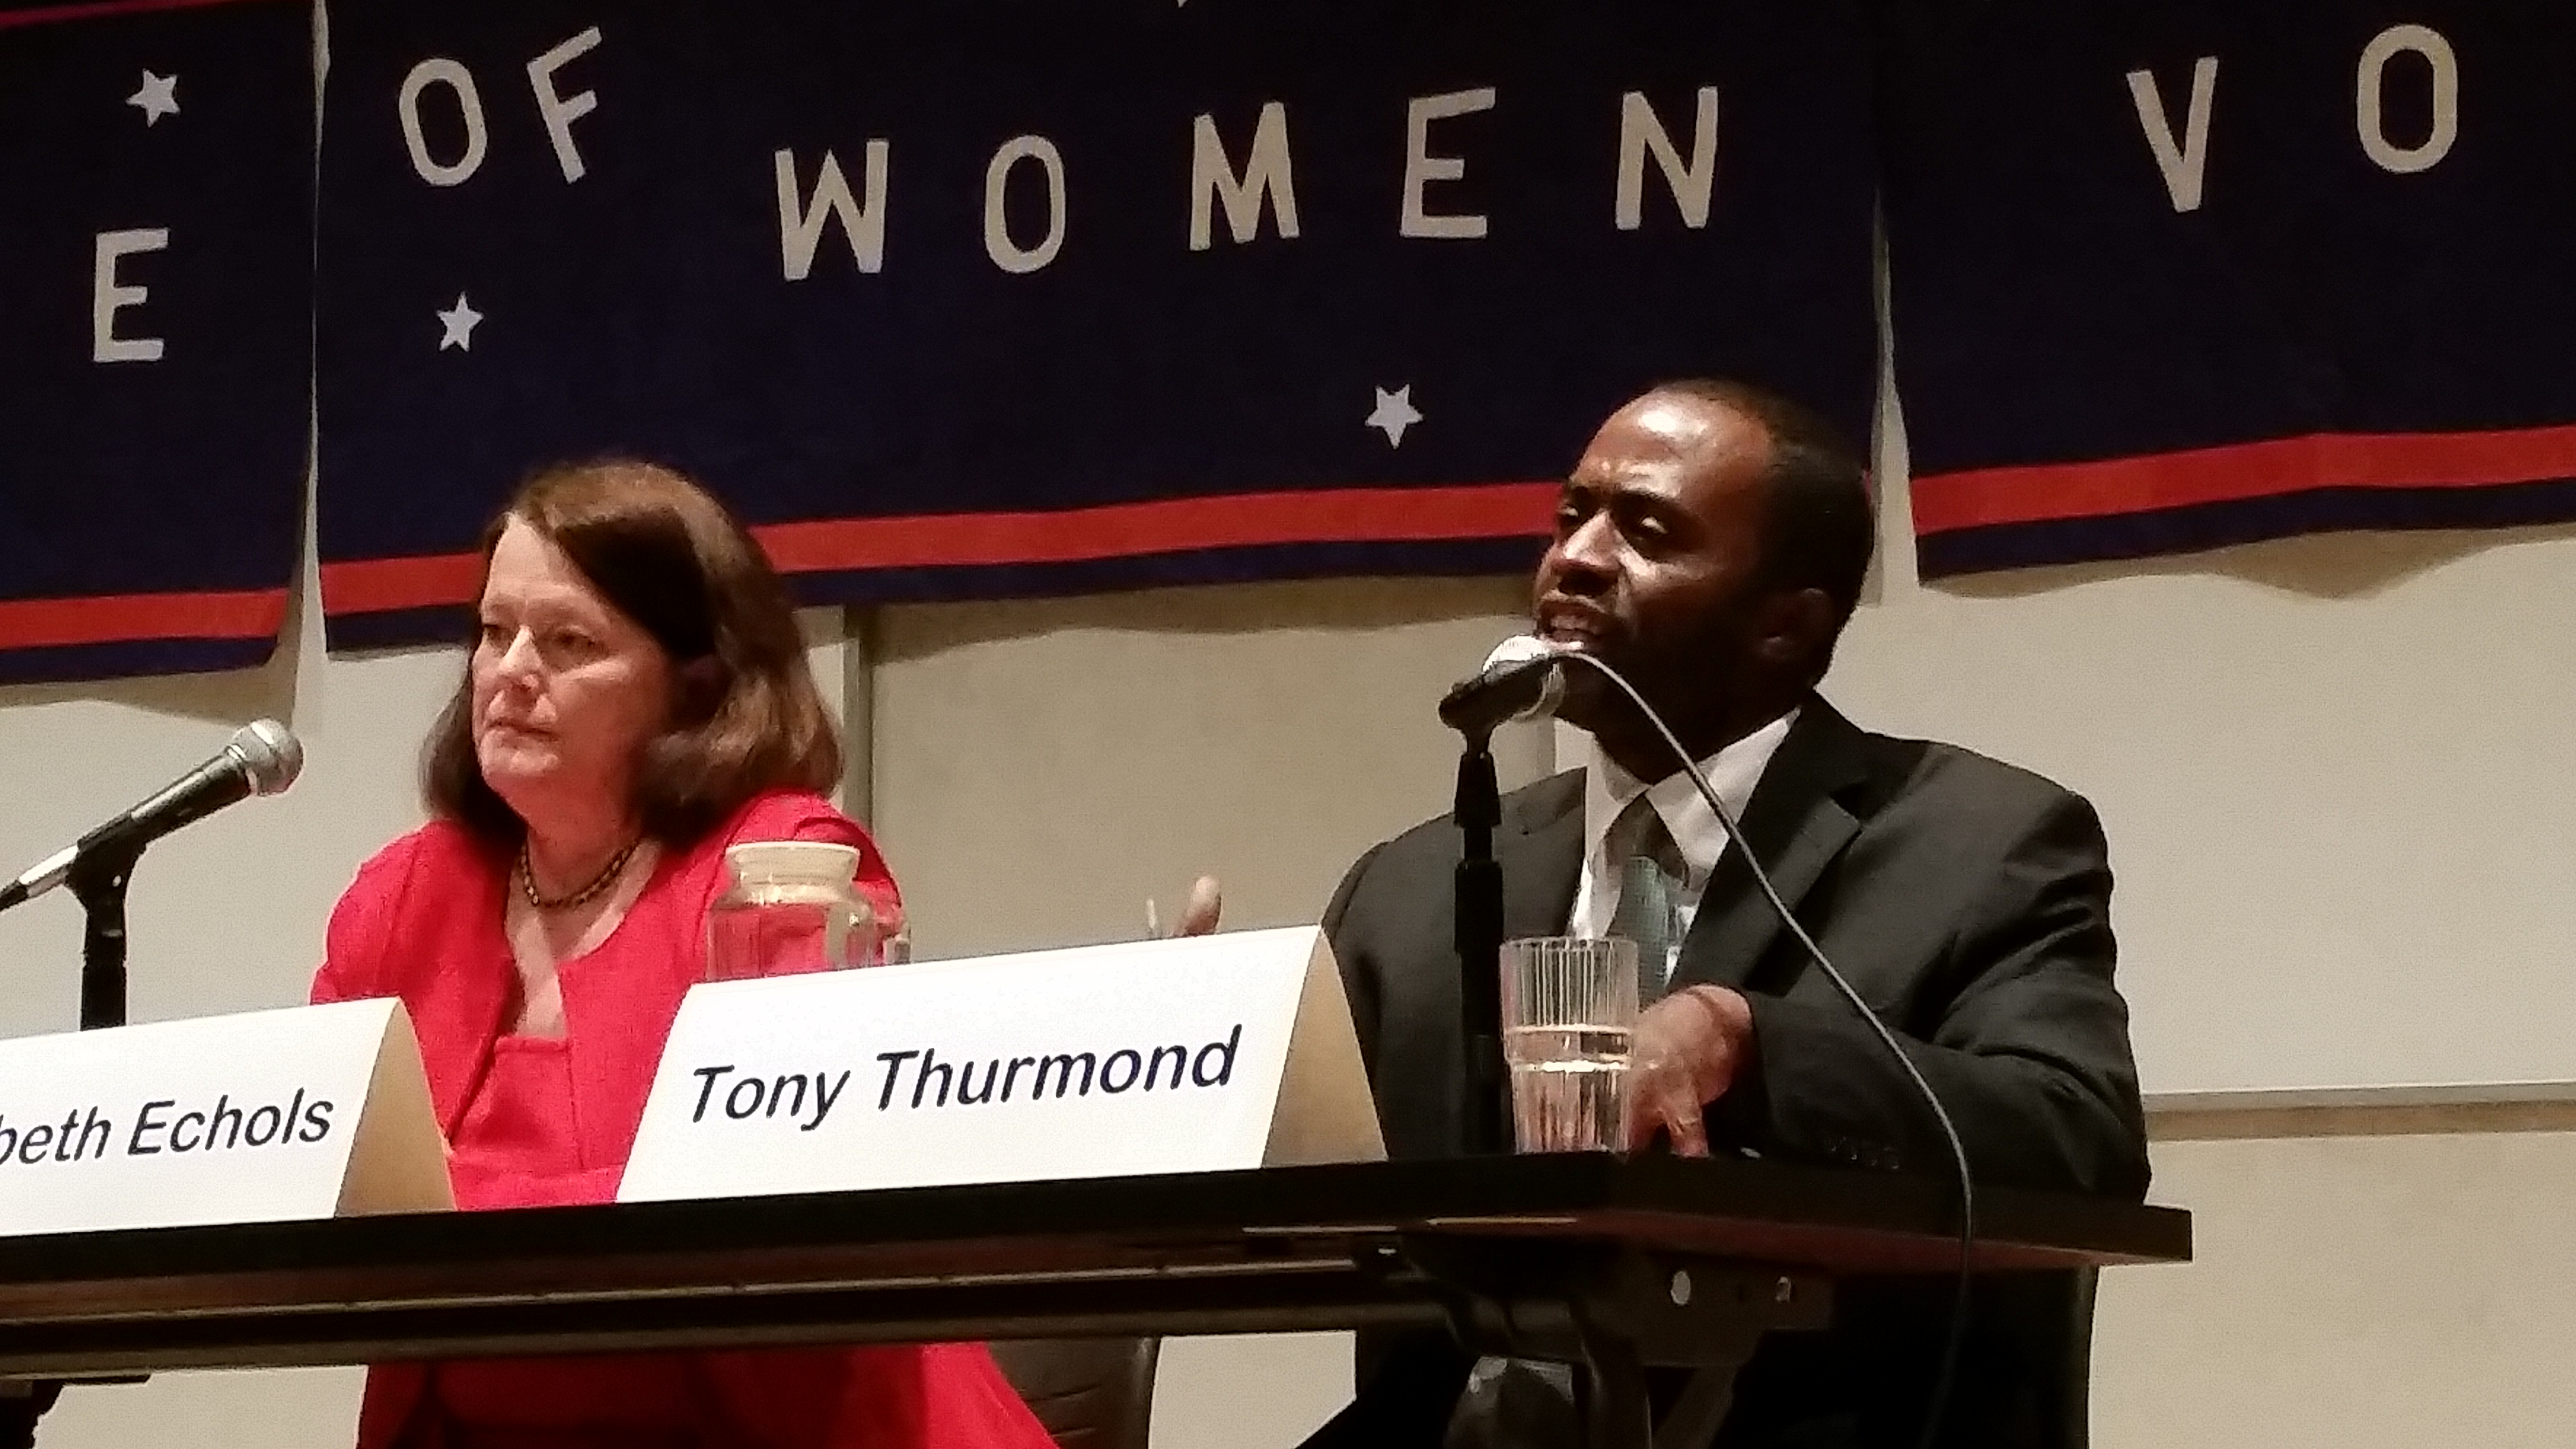 State Assembly candidates Elizabeth Echols and Tony Thurmond debated each other in Berkeley on Oct. 7.